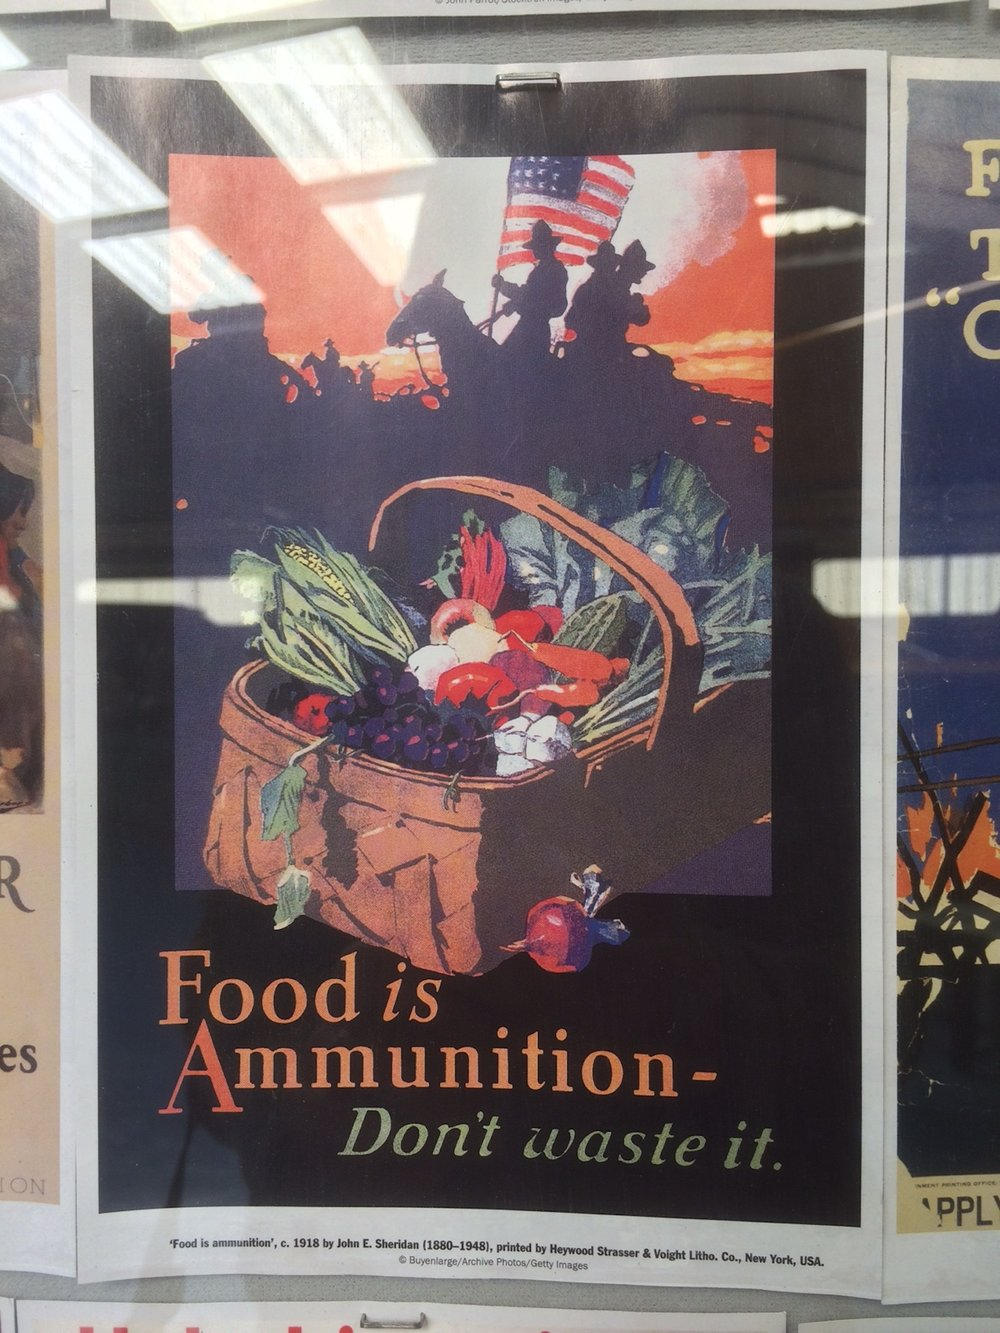 2017-august-food-ammunition-war-humanKINDER.JPG